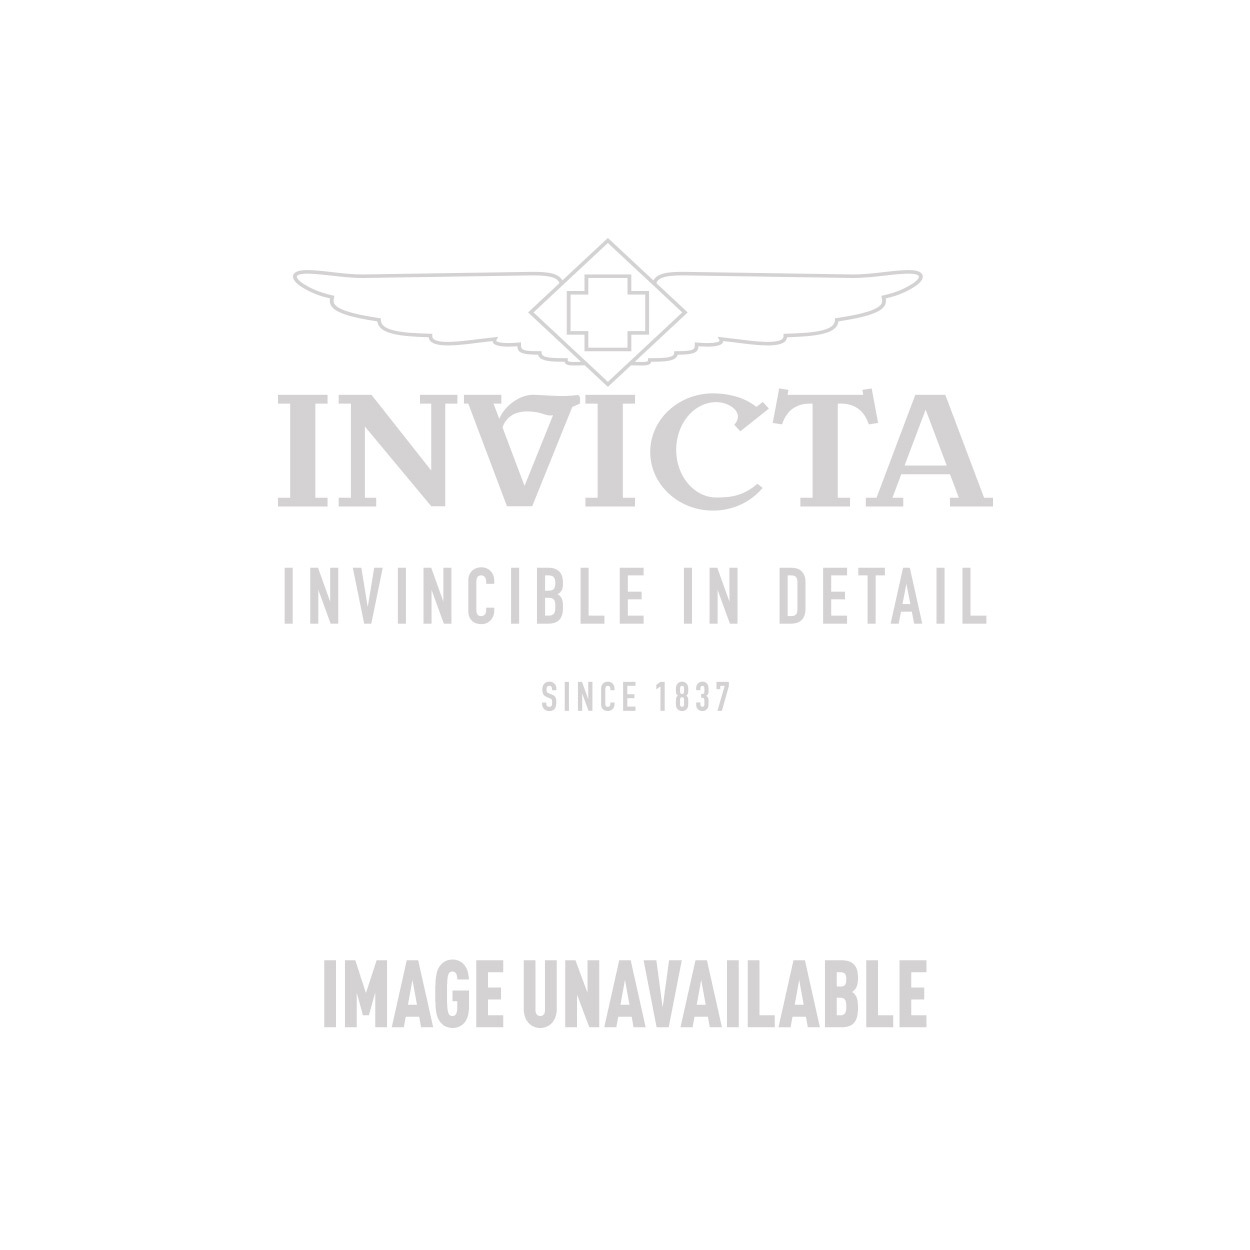 Invicta Specialty Quartz Watch - Stainless Steel case Stainless Steel band - Model 20351